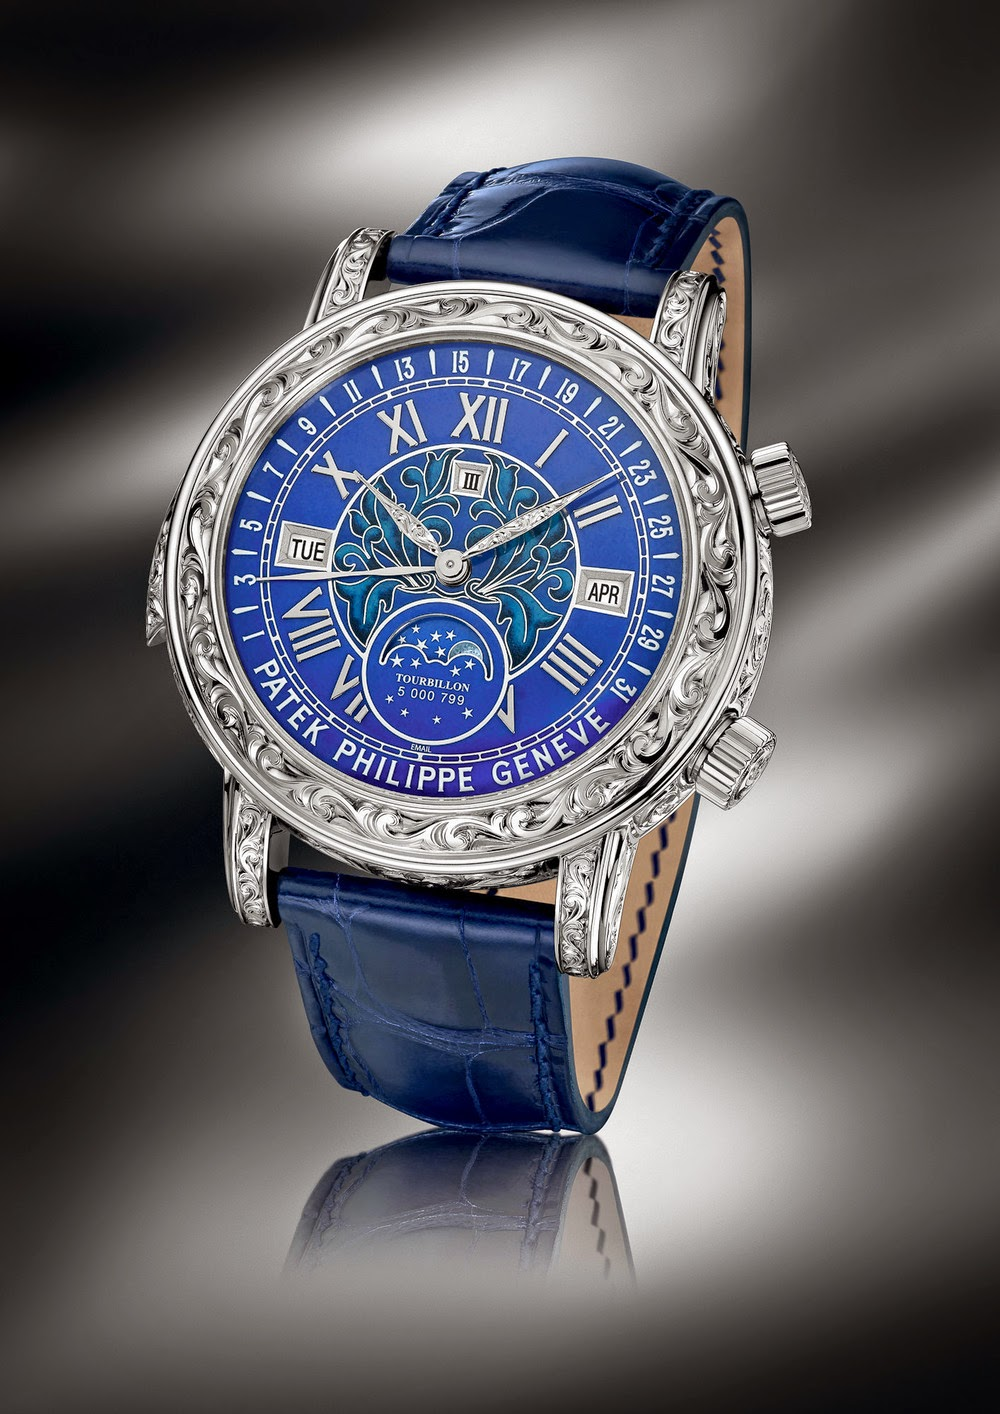 Patek philippe sky moon tourbillon 6002g price